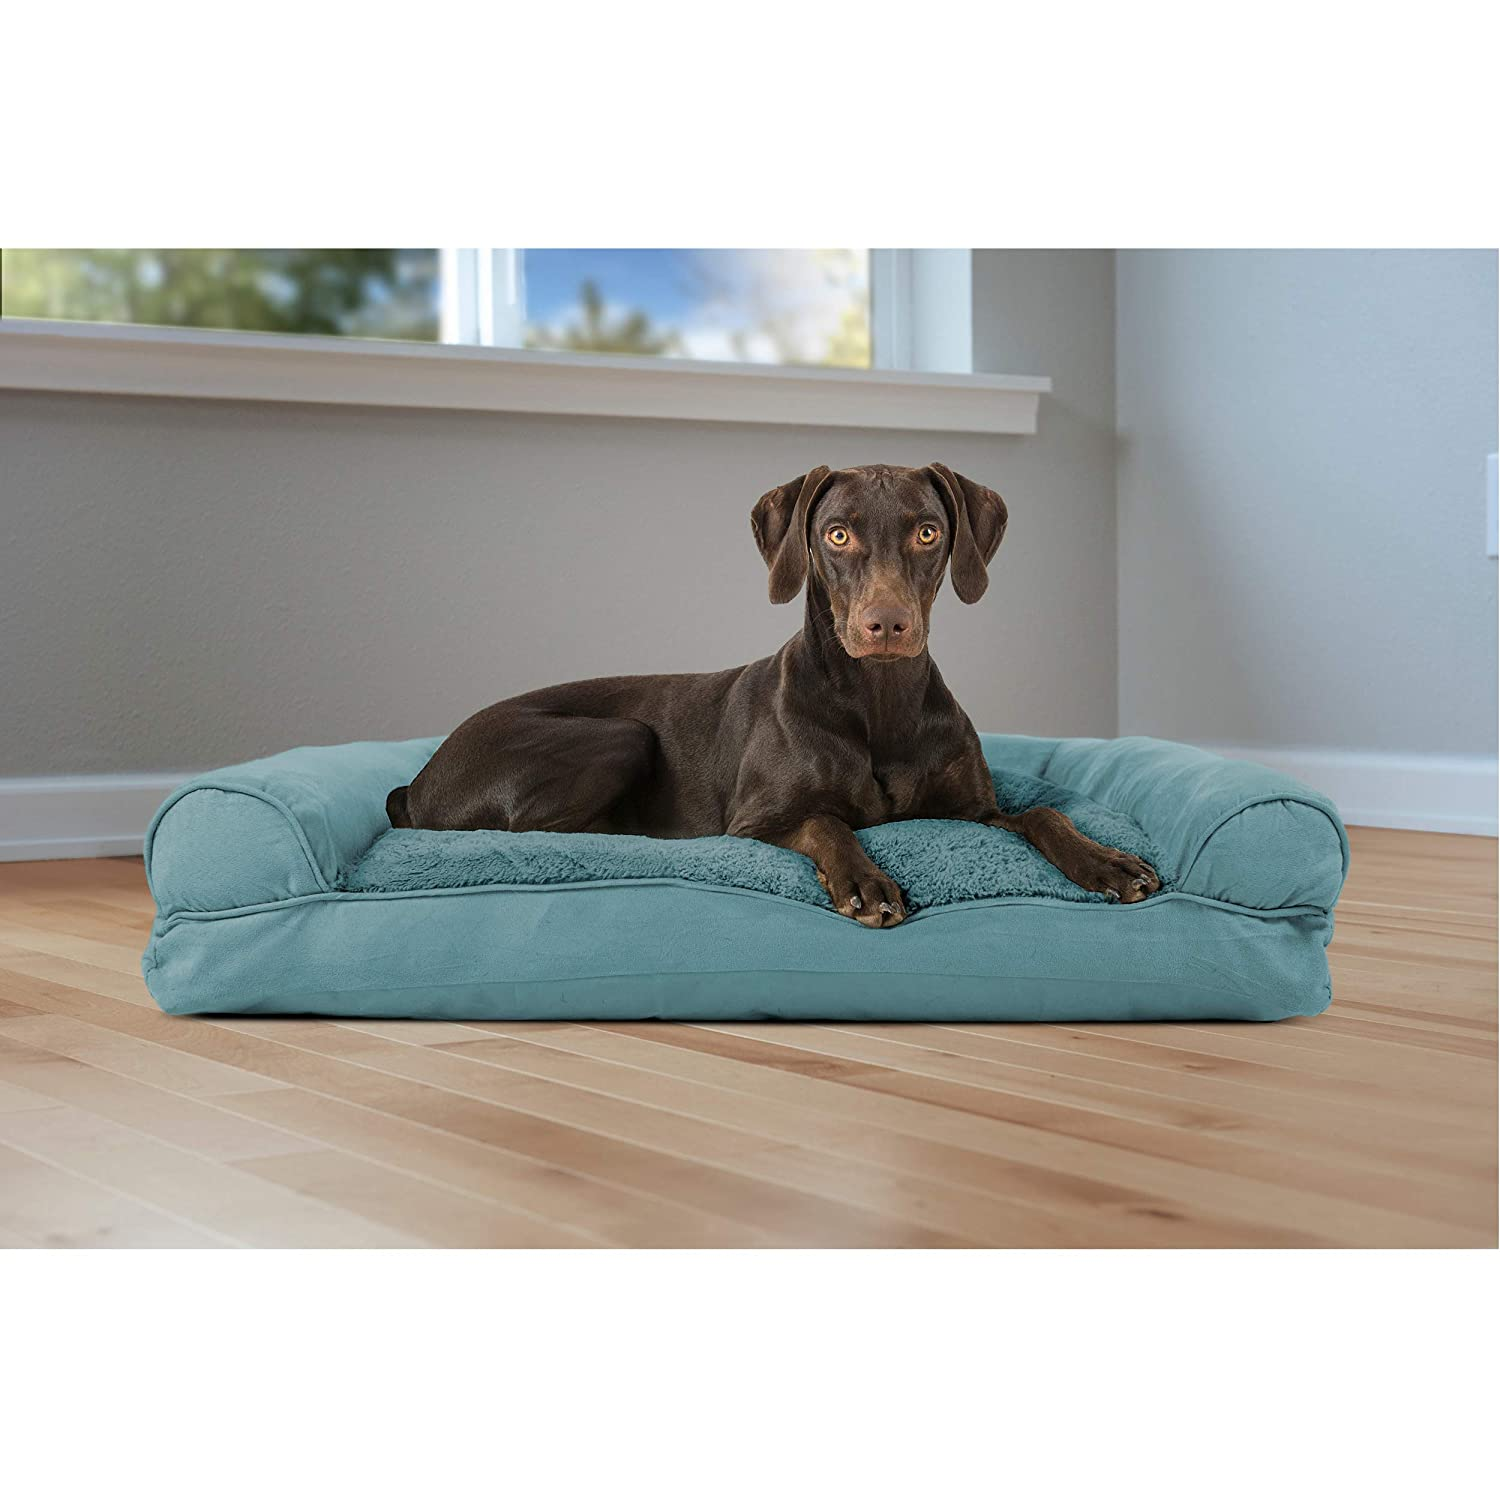 Large Furhaven Pet Dog Bed Ultra Plush Faux Fur /& Suede Pillow Cushion Traditional Sofa-Style Living Room Couch Pet Bed w// Removable Cover for Dogs /& Cats Clay